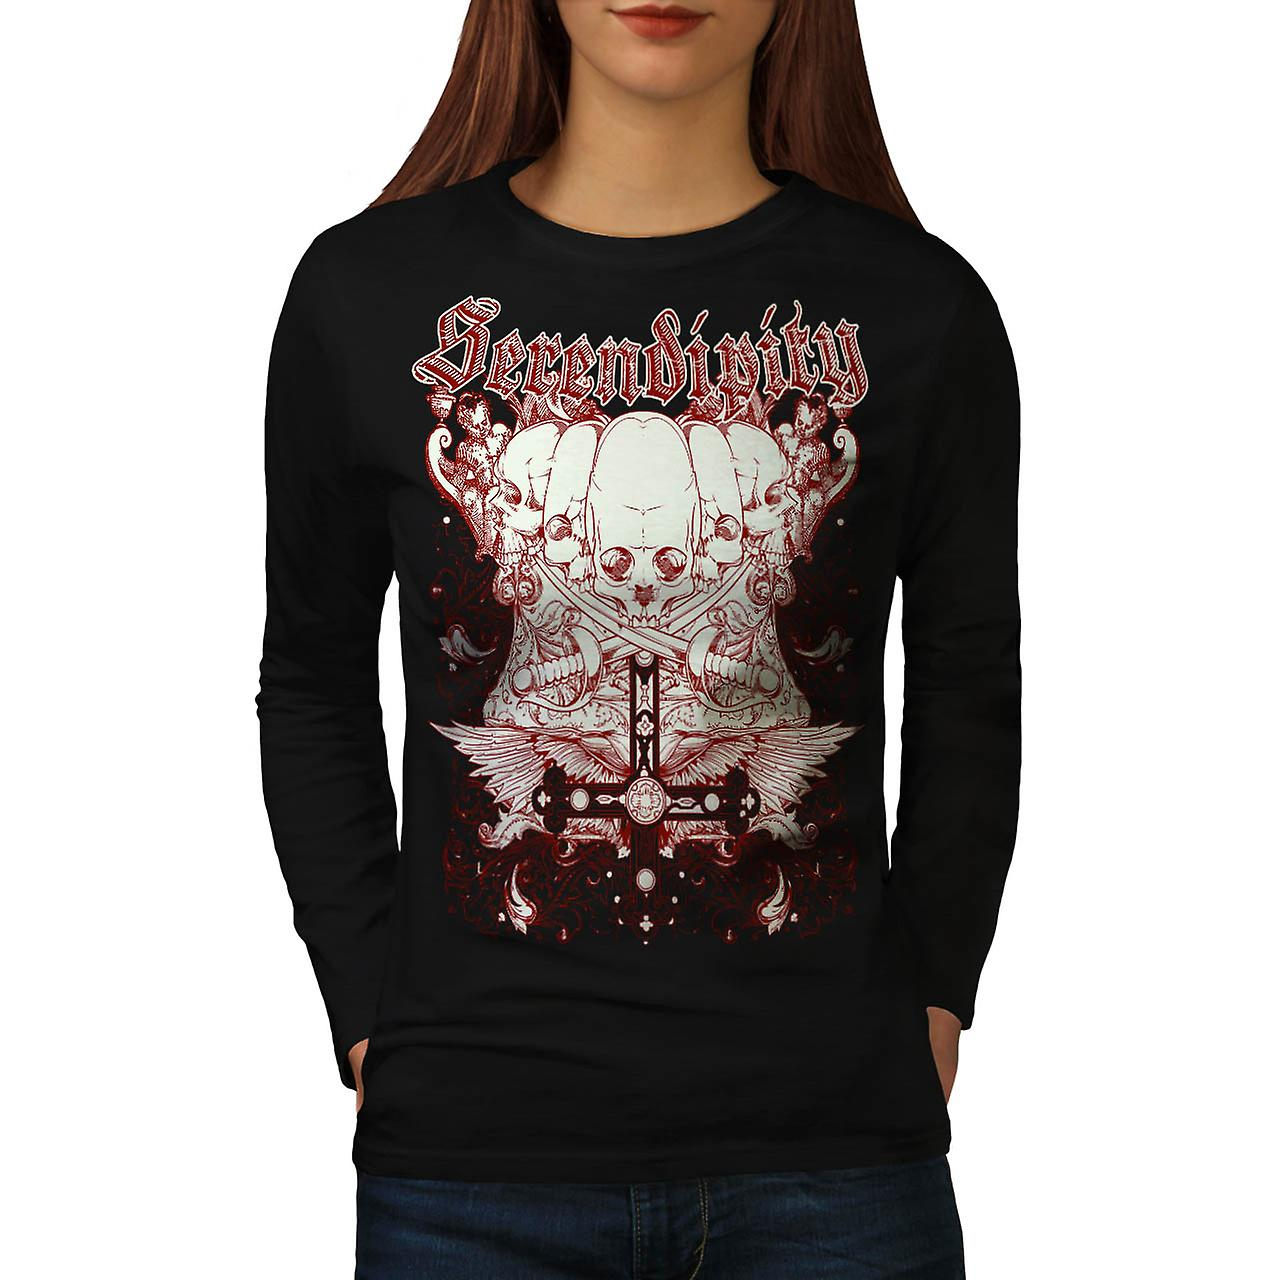 Serendipity Tombstone Grave Yard Women Black Long Sleeve T-shirt | Wellcoda